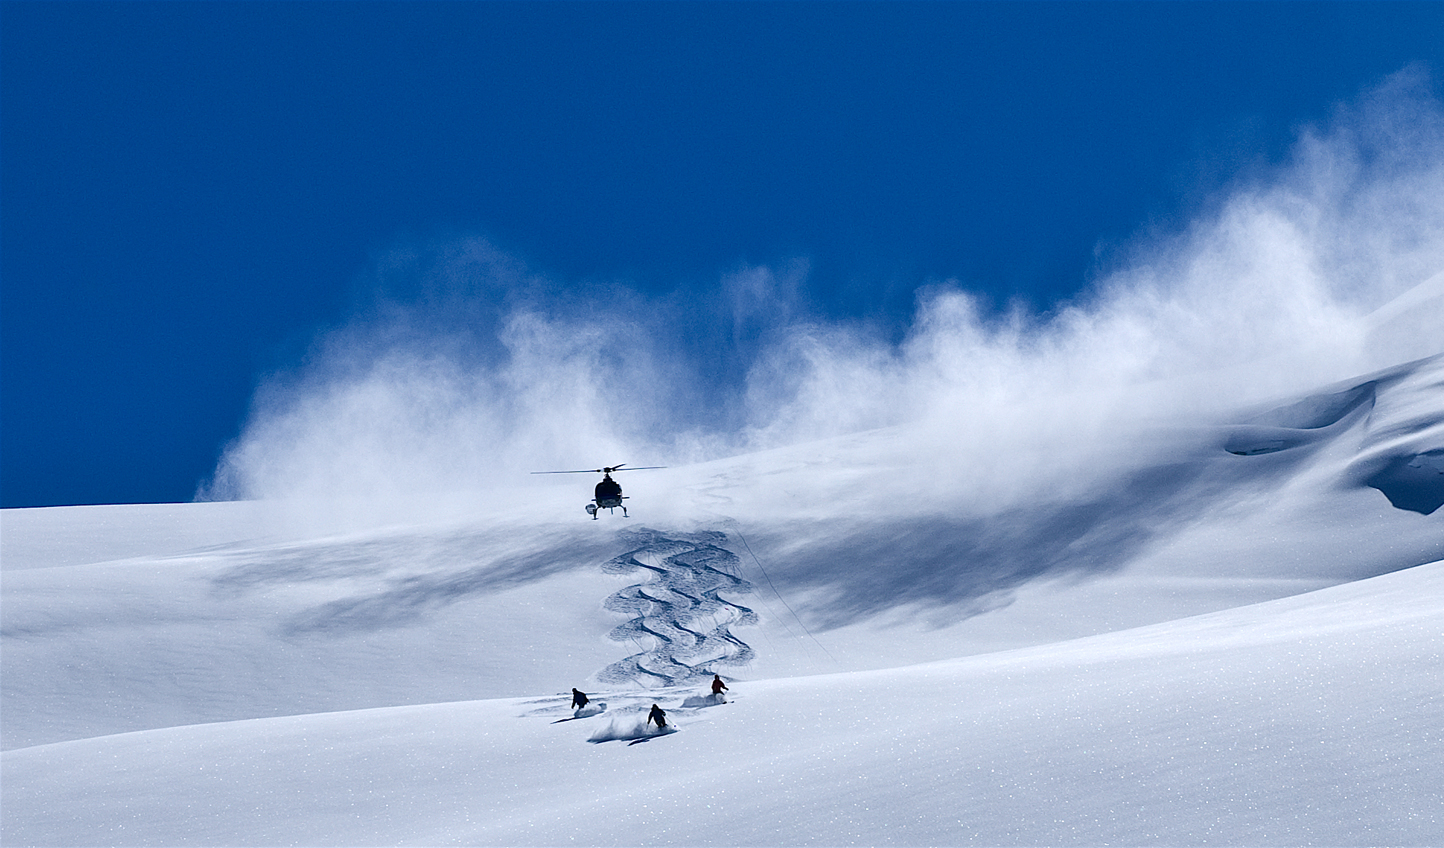 Lay fresh tracks through pristine powder